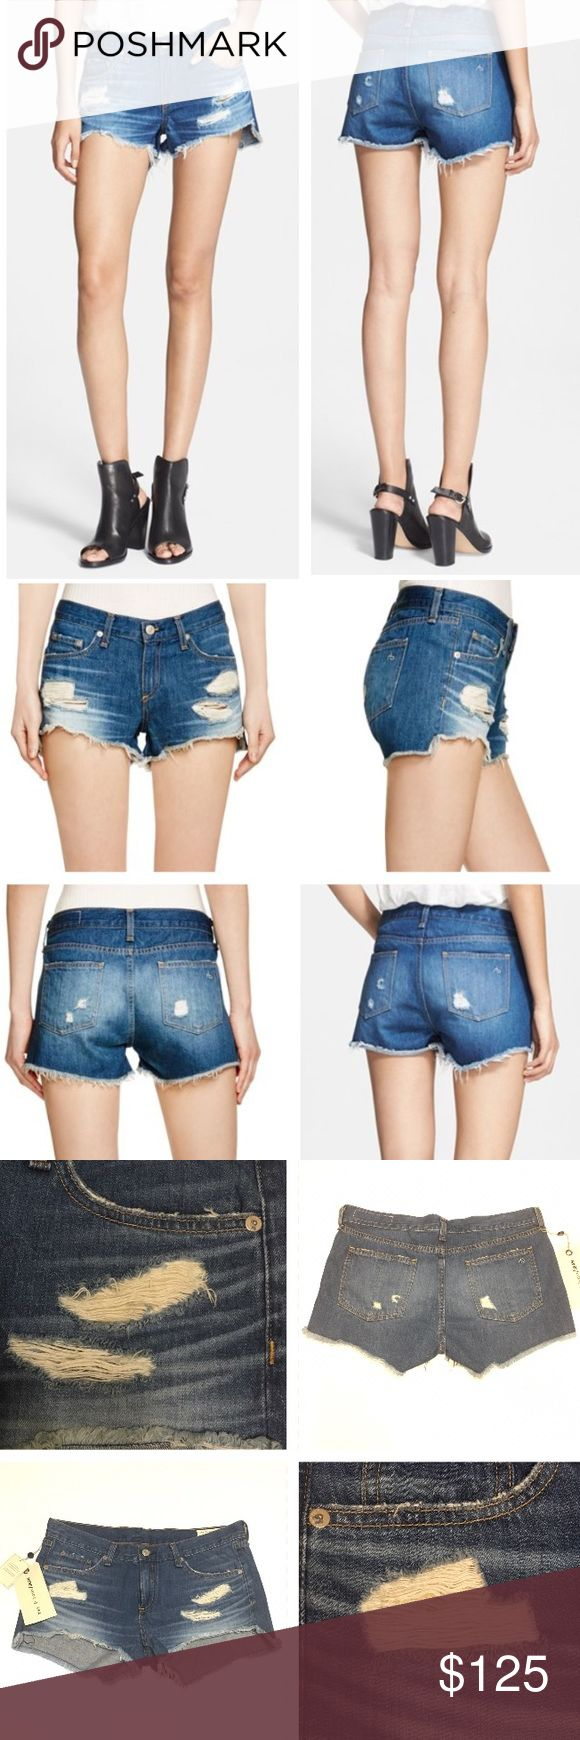 NWT RAG & BONE Cutoff Shorts (Freeport) 28 NWT Rag & Bone Cutoff Shorts. Color: Freeport. Size: 28. Indigo-wash shorts crafted from rigid Japanese denim are torn to pieces and finished with raggedy cutoff hems. Super trendy for spring and summer. These are still available on Nordstrom.com for full price of $165. Five pockets. Color looks like the stock photos. MADE IN THE USA 100% Cotton. Enjoy!🌸 rag & bone Shorts Jean Shorts